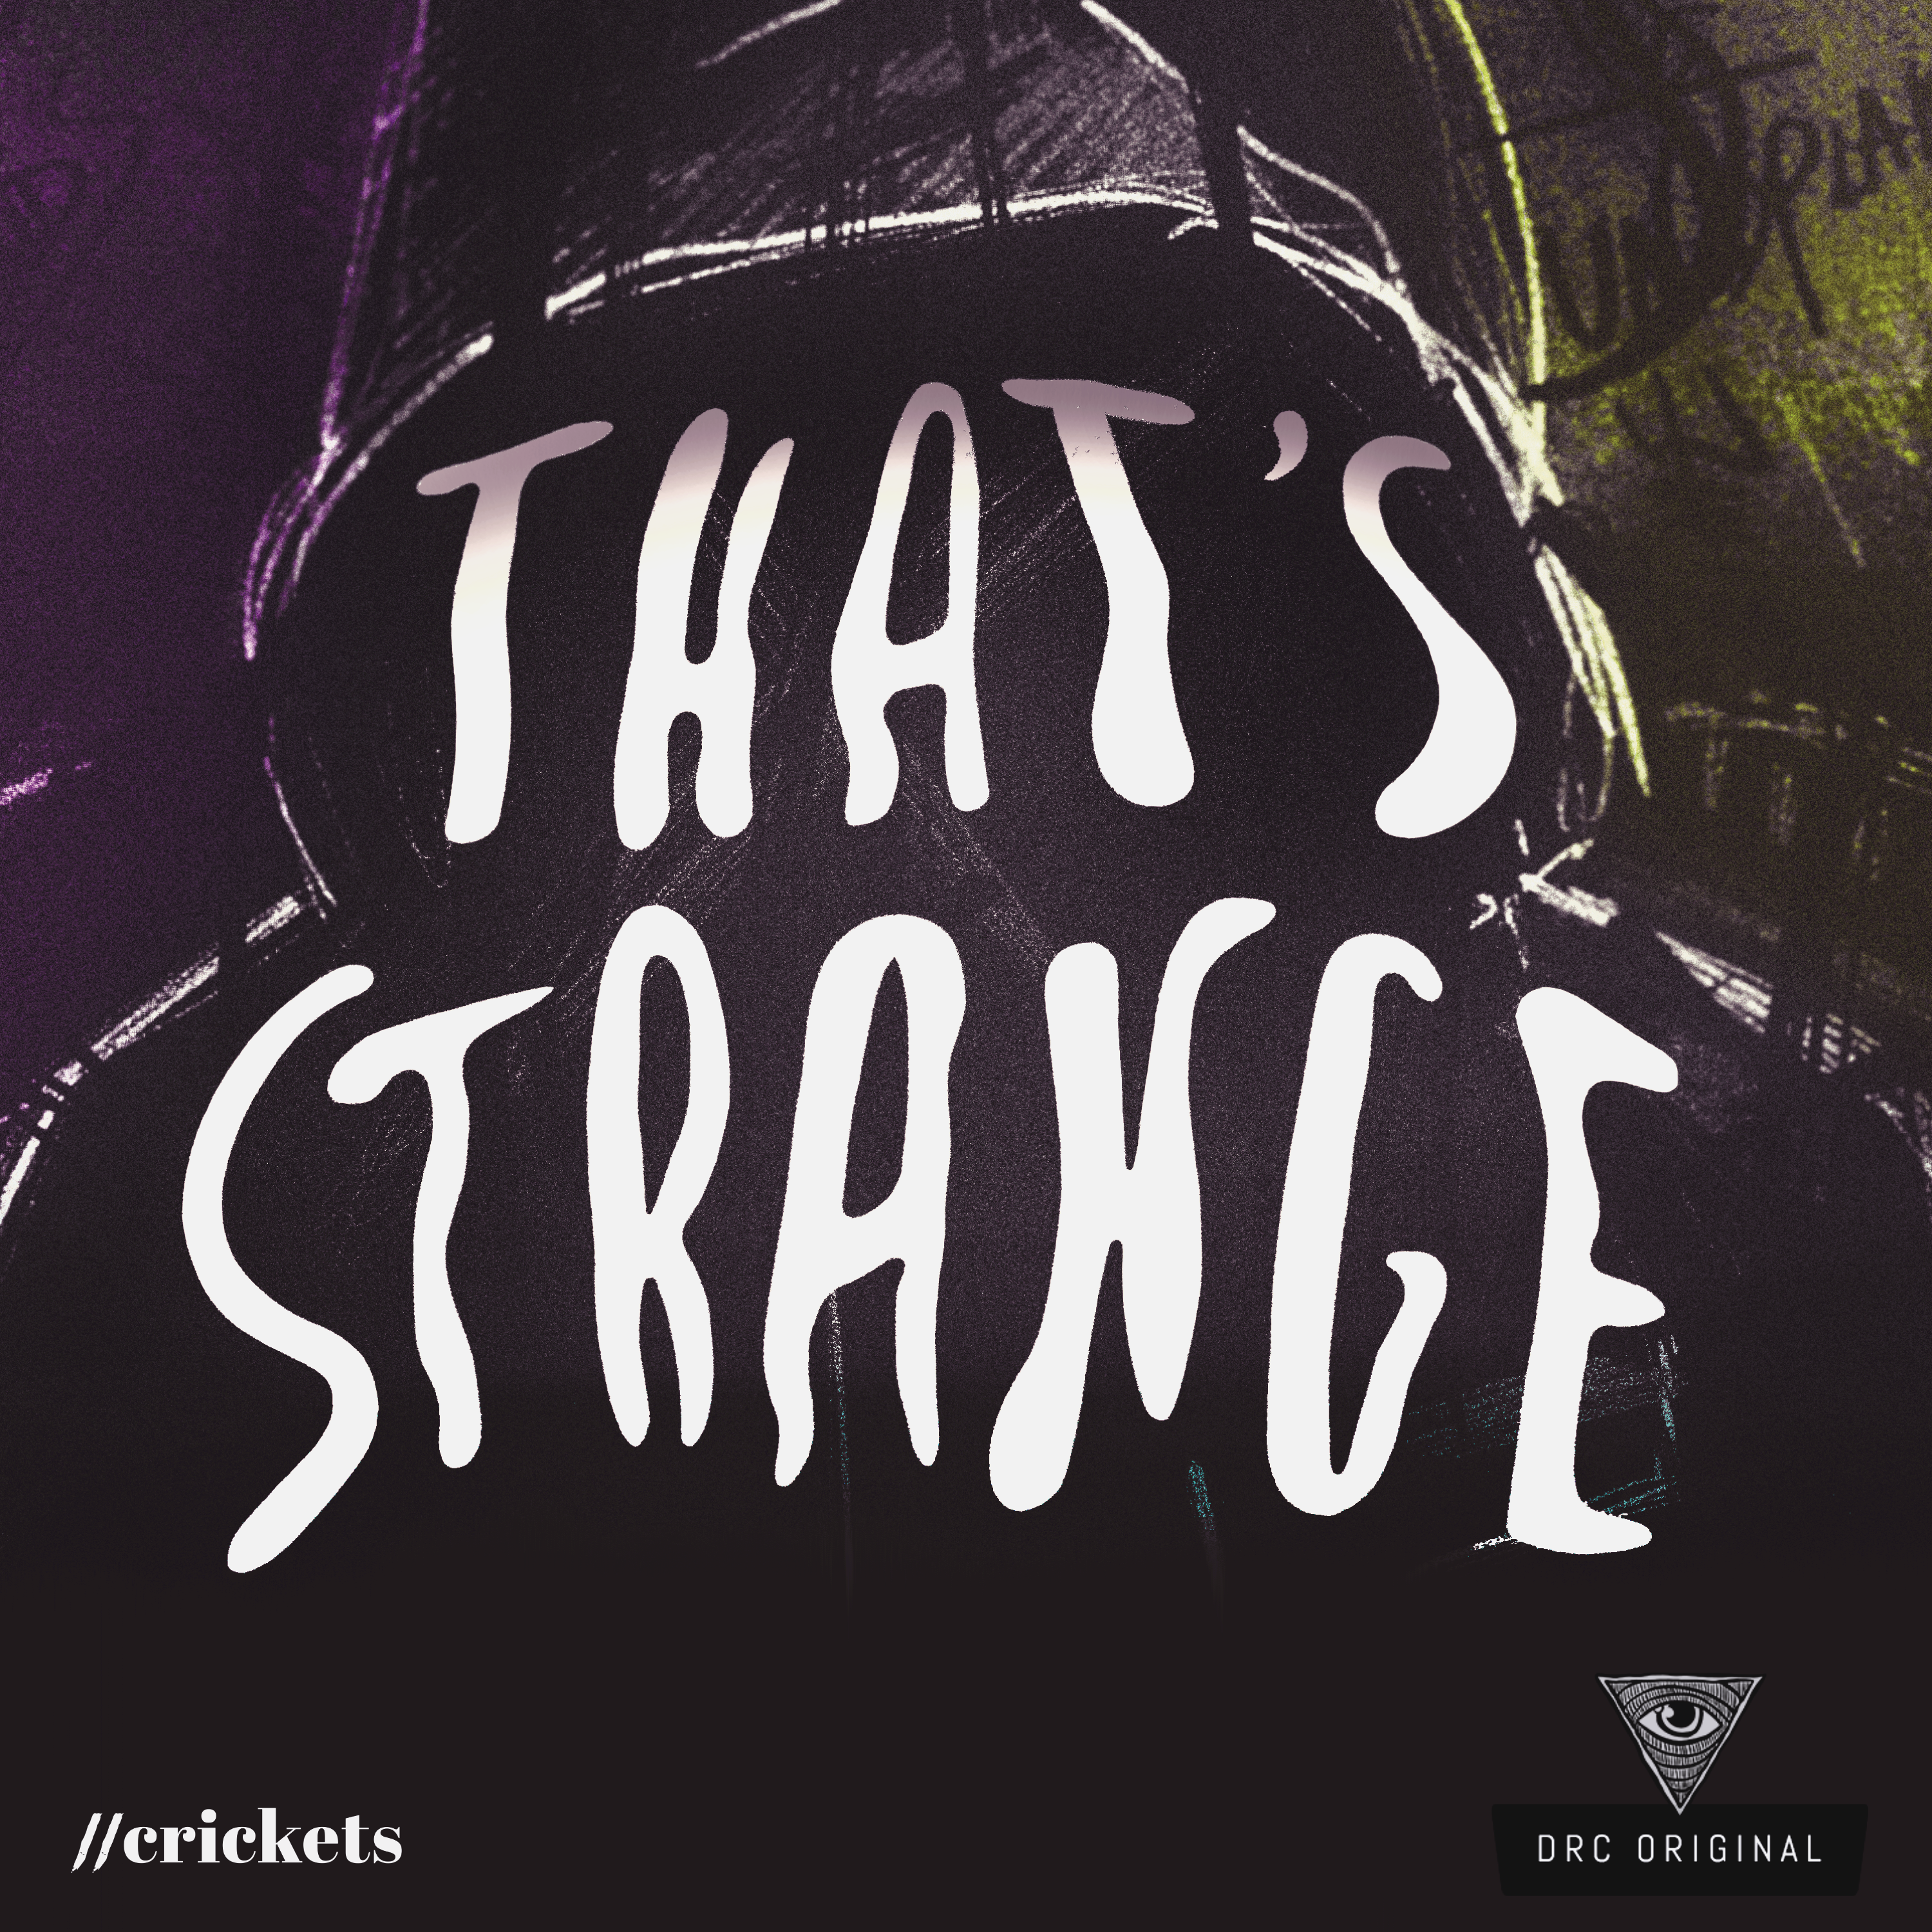 [News] THAT'S STRANGE Joins the //crickets Podcast Network